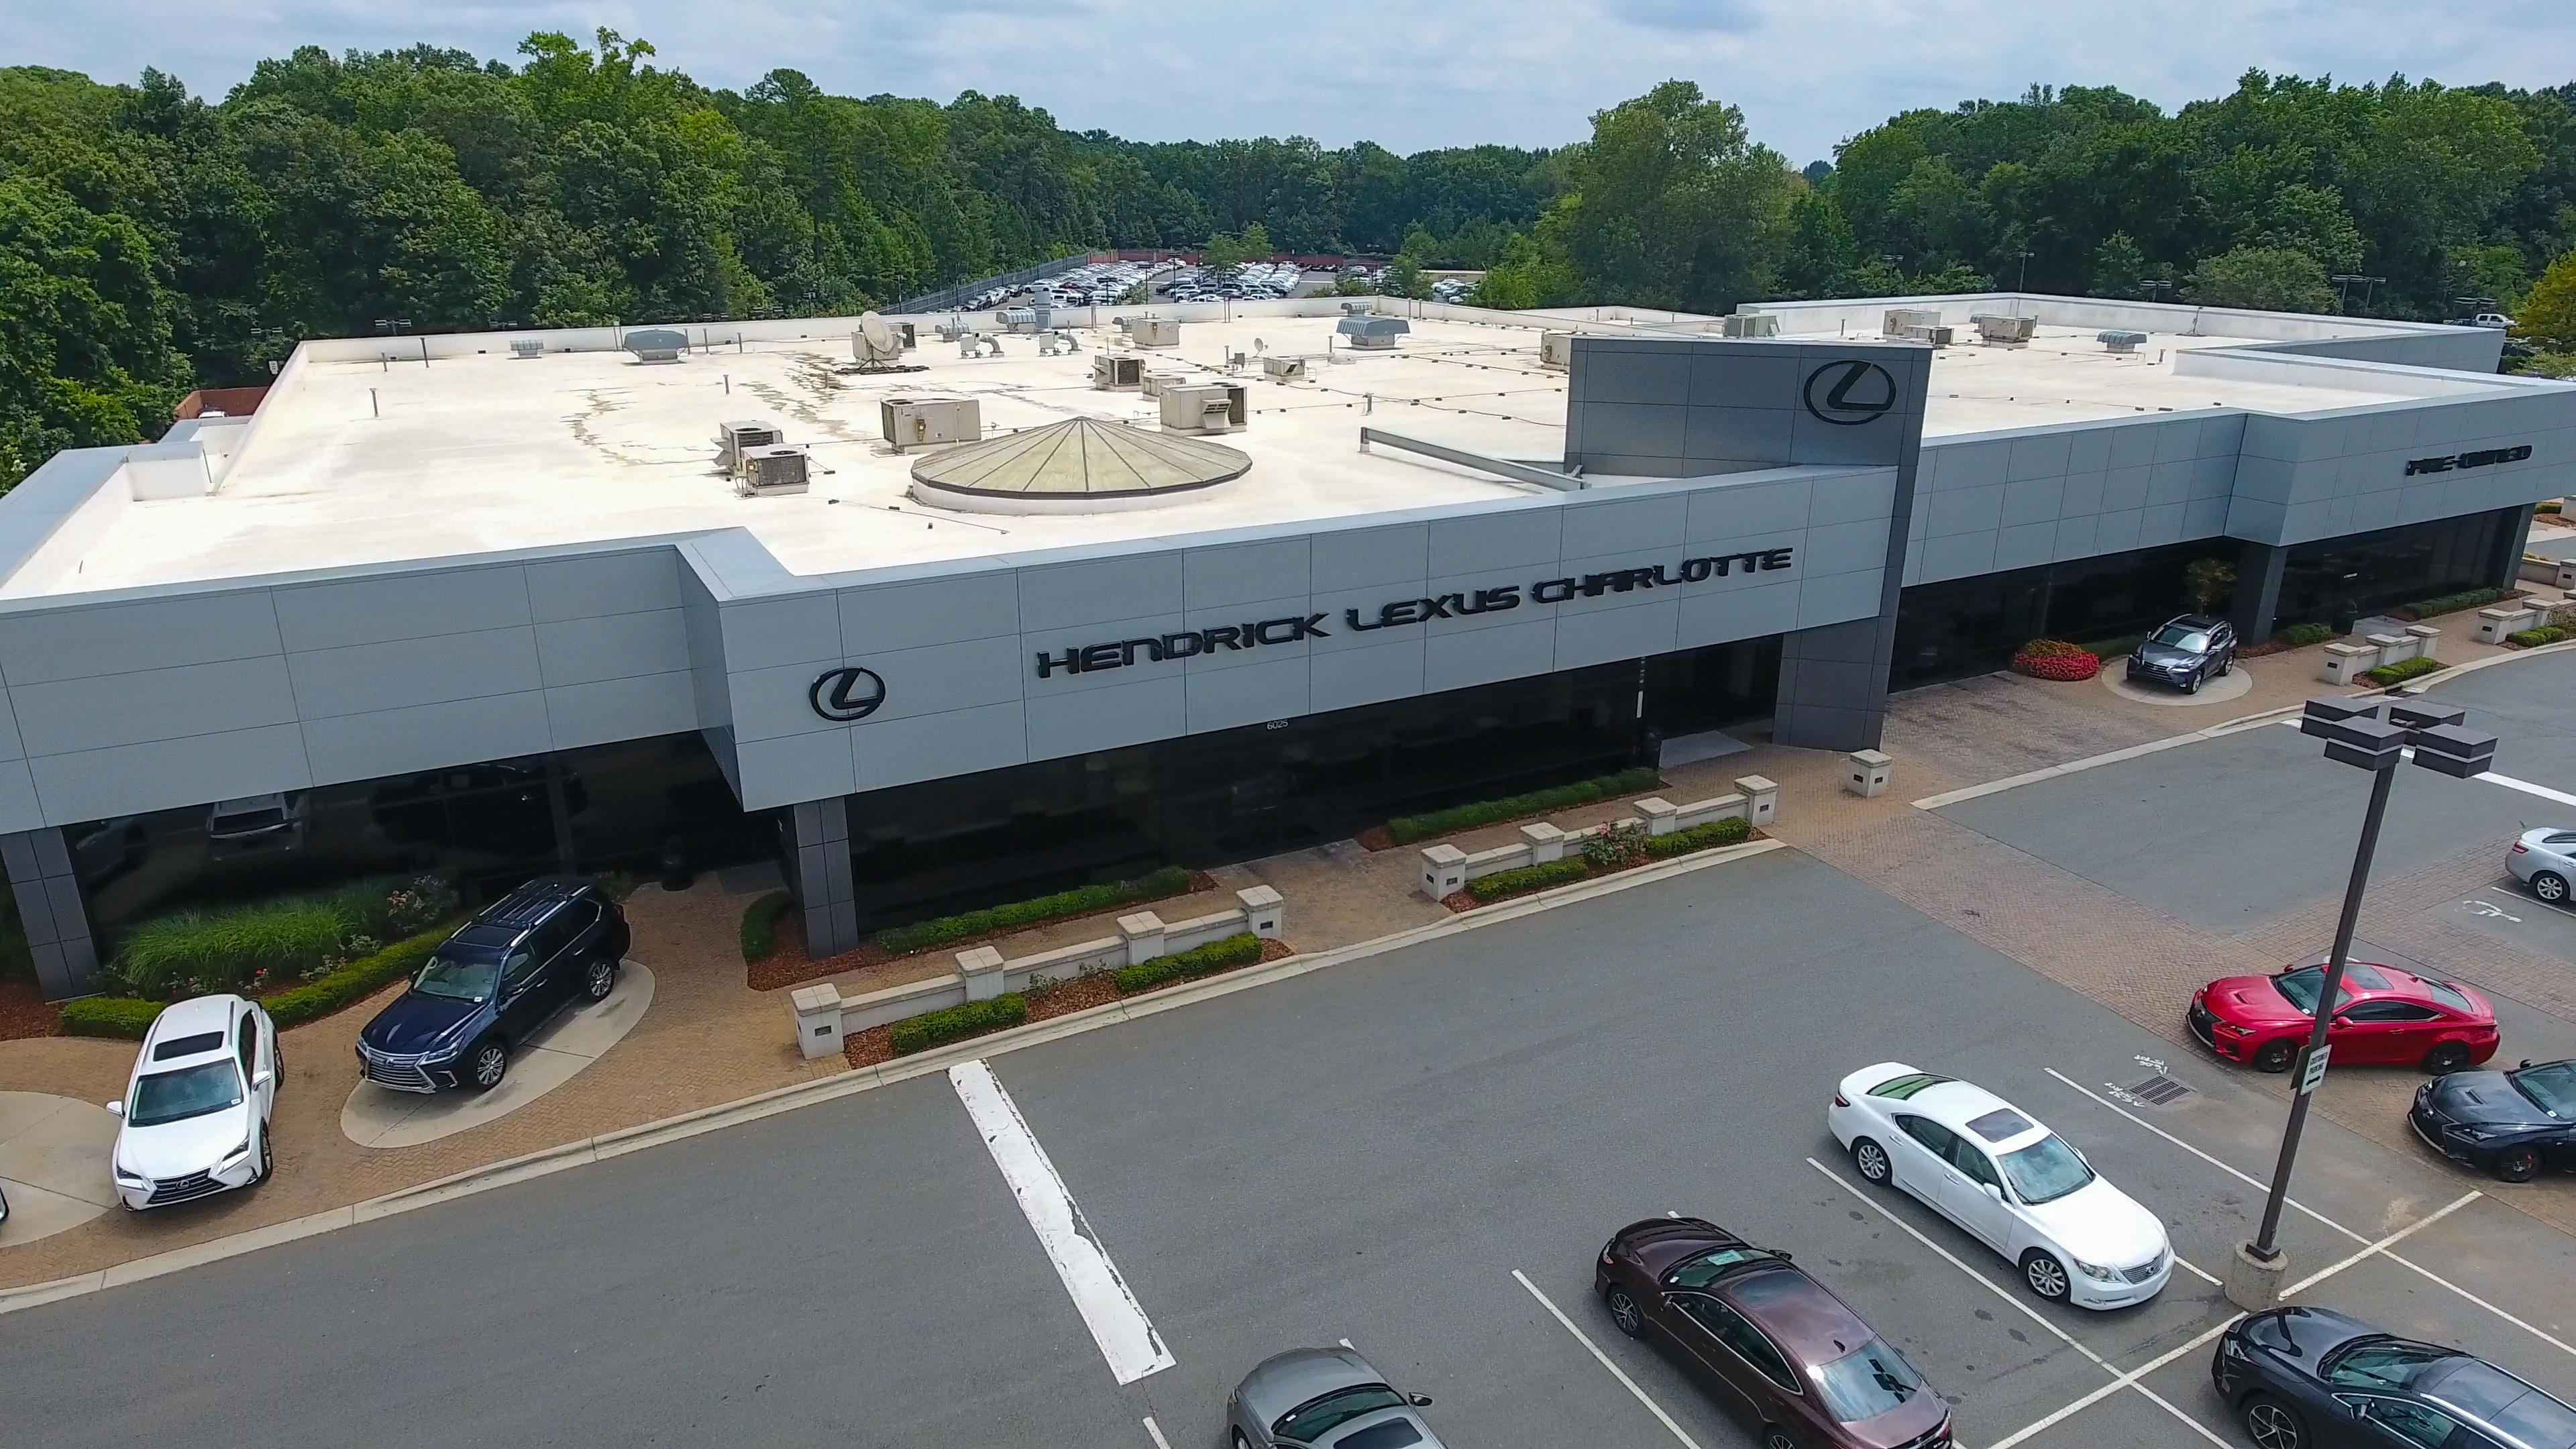 Hendrick Lexus Charlotte 6025 E Independence Blvd Charlotte, NC Car Service    MapQuest